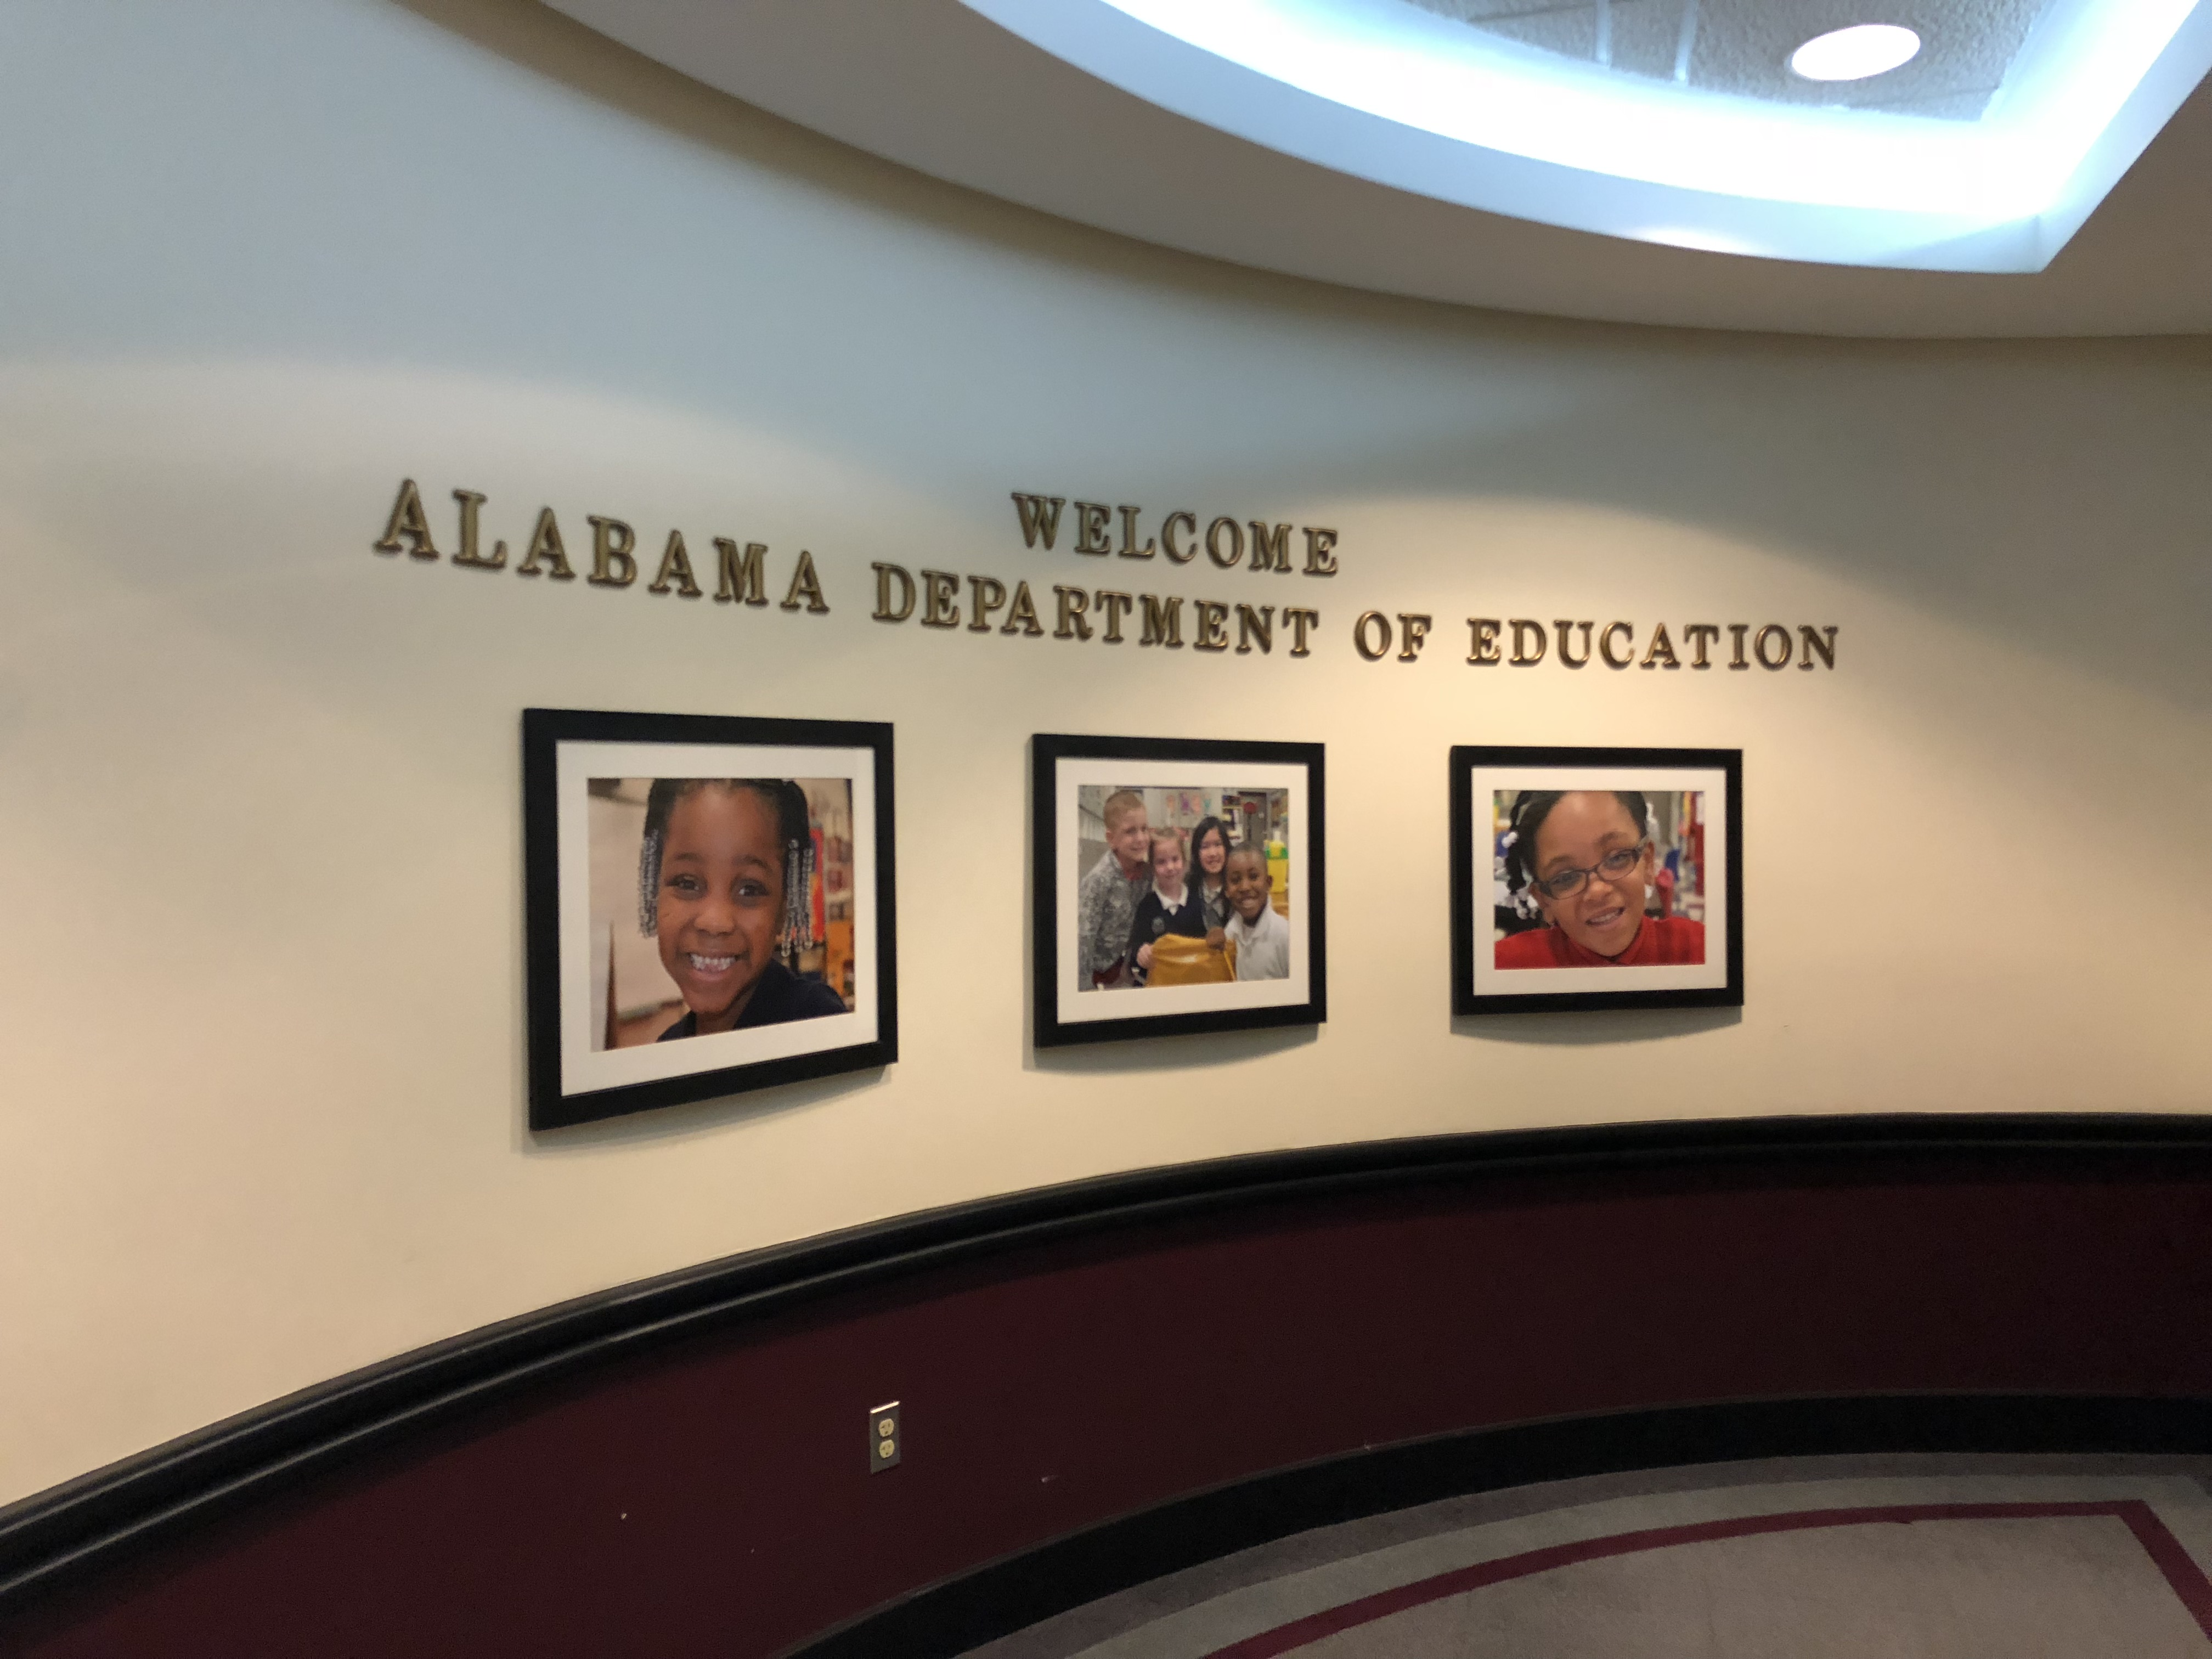 Future of Alabamas education department to be decided in evaluation